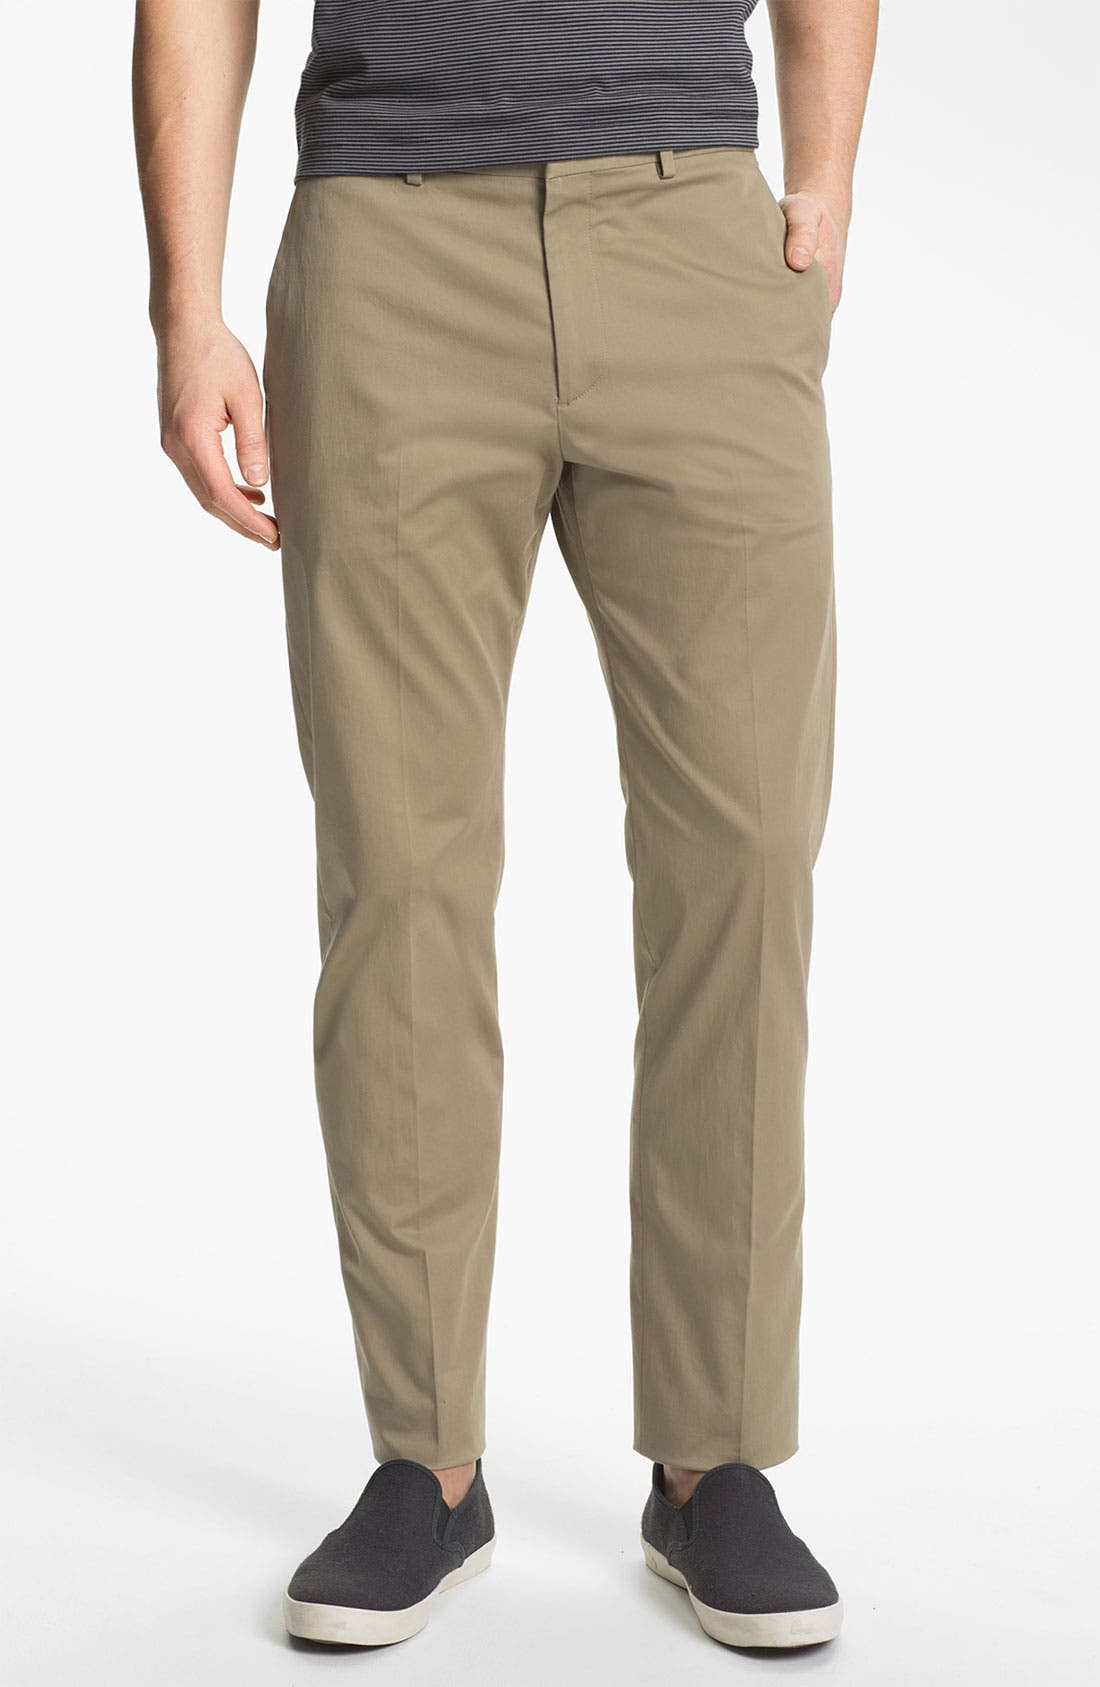 Alternate Image 1 Selected - Theory 'Jake W Ridott' Slim Cotton Blend Pants